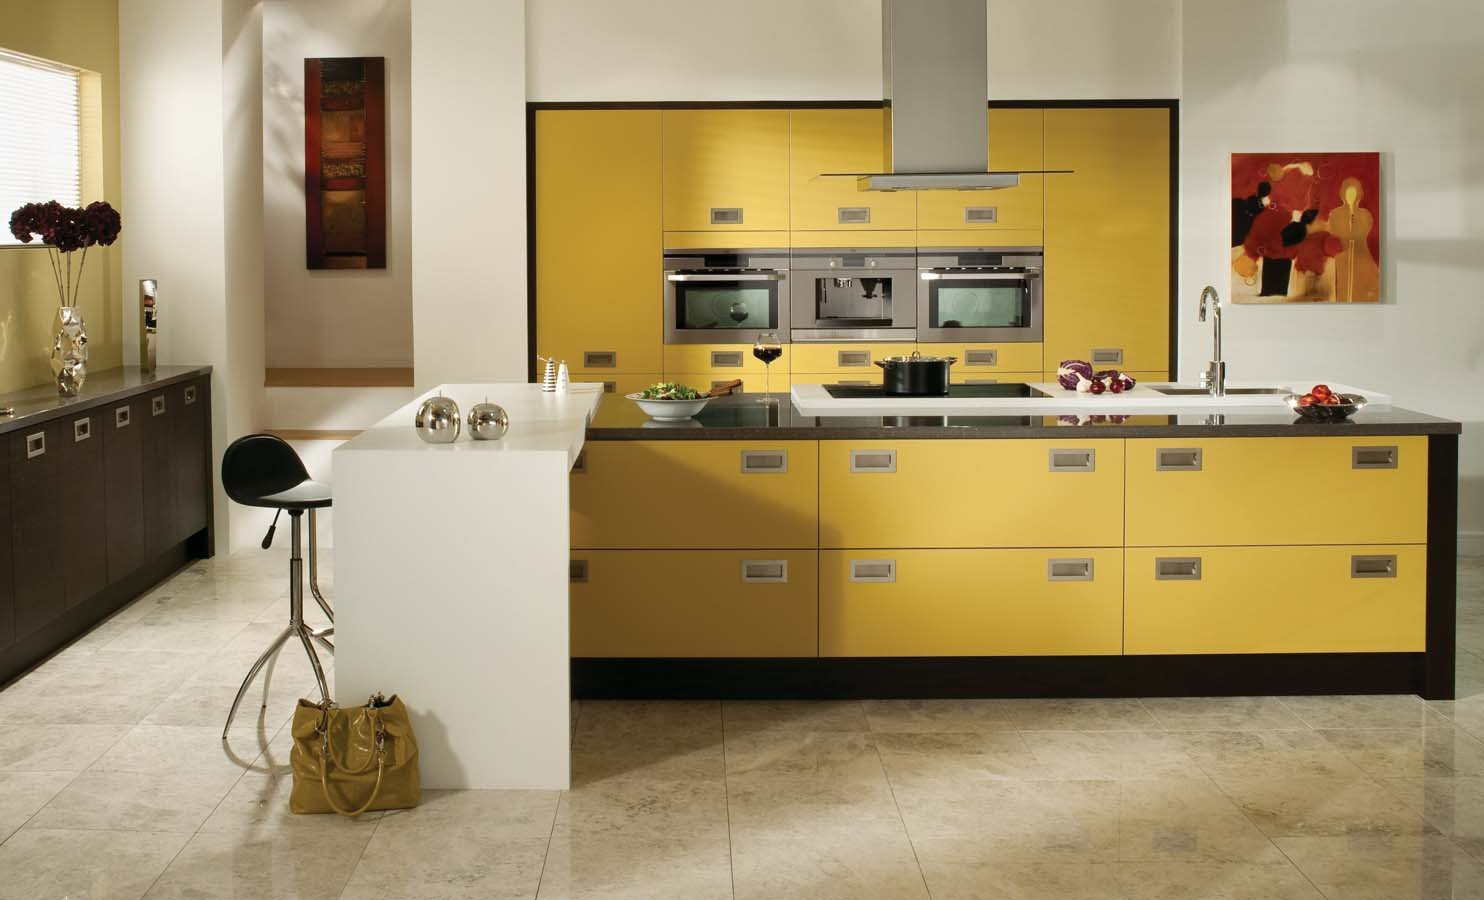 Modern kitchen with yellow cabinets